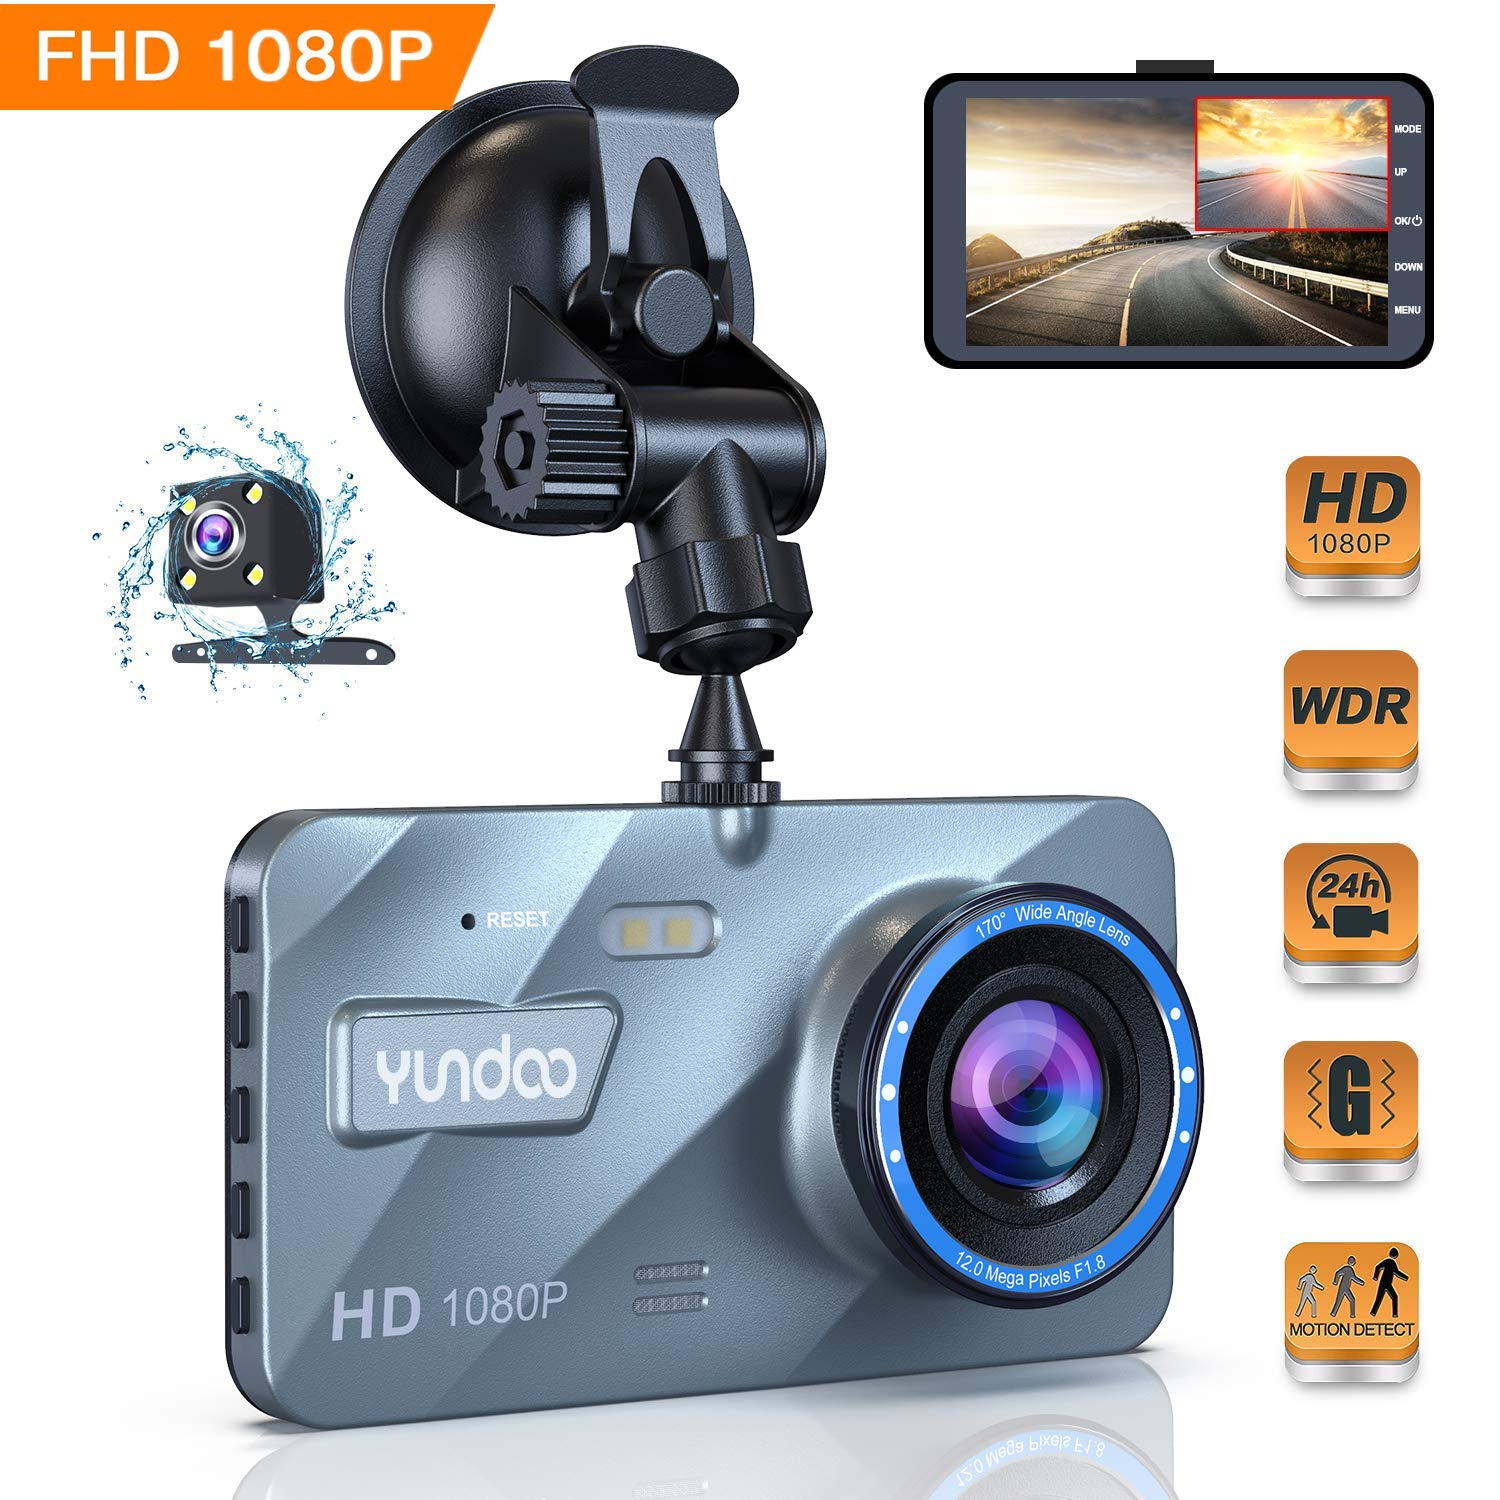 【2019 New Version】Rear Car Camera 1080P Full HD 170° Wide Angle Dashcam